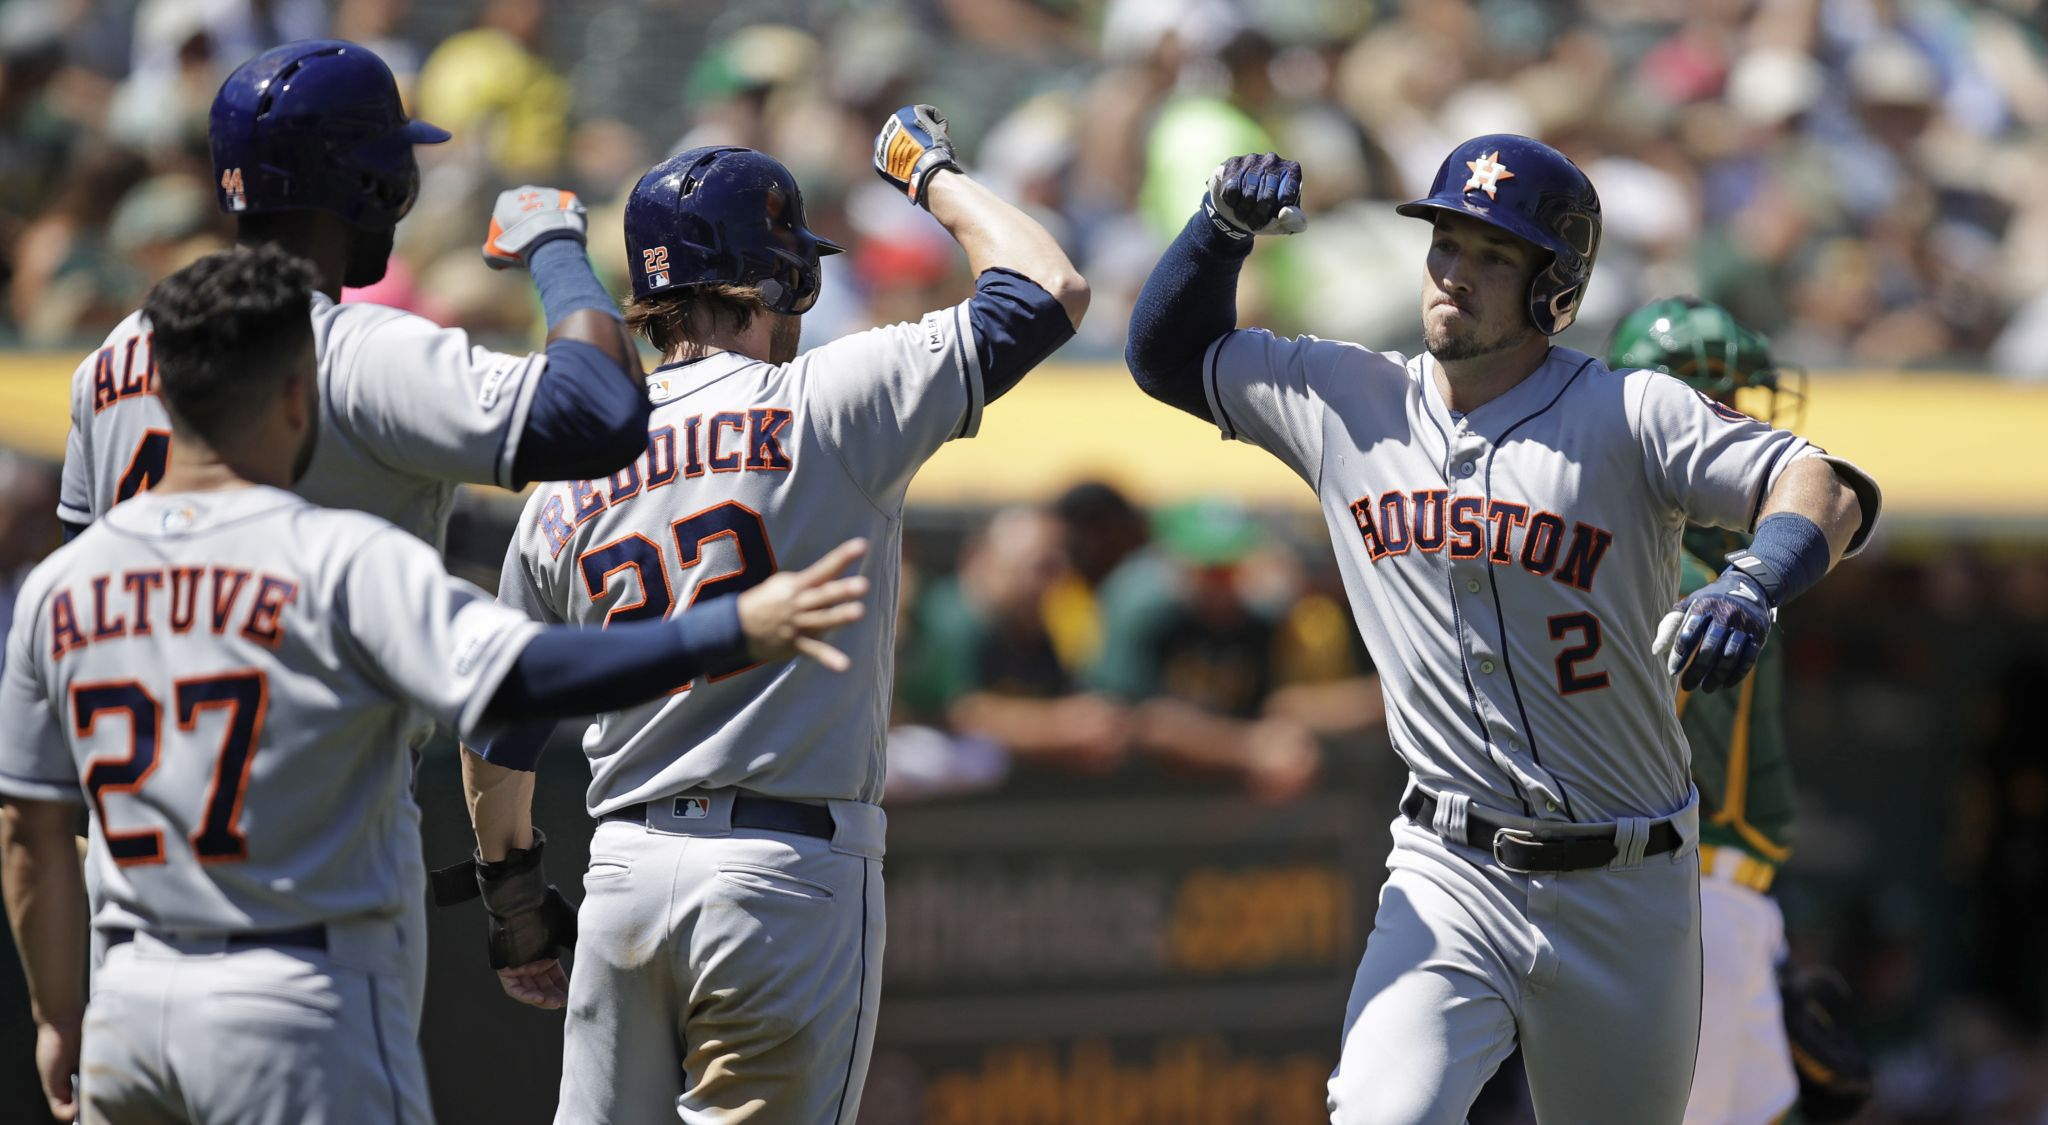 Astros snap 5-game losing streak with win over A's